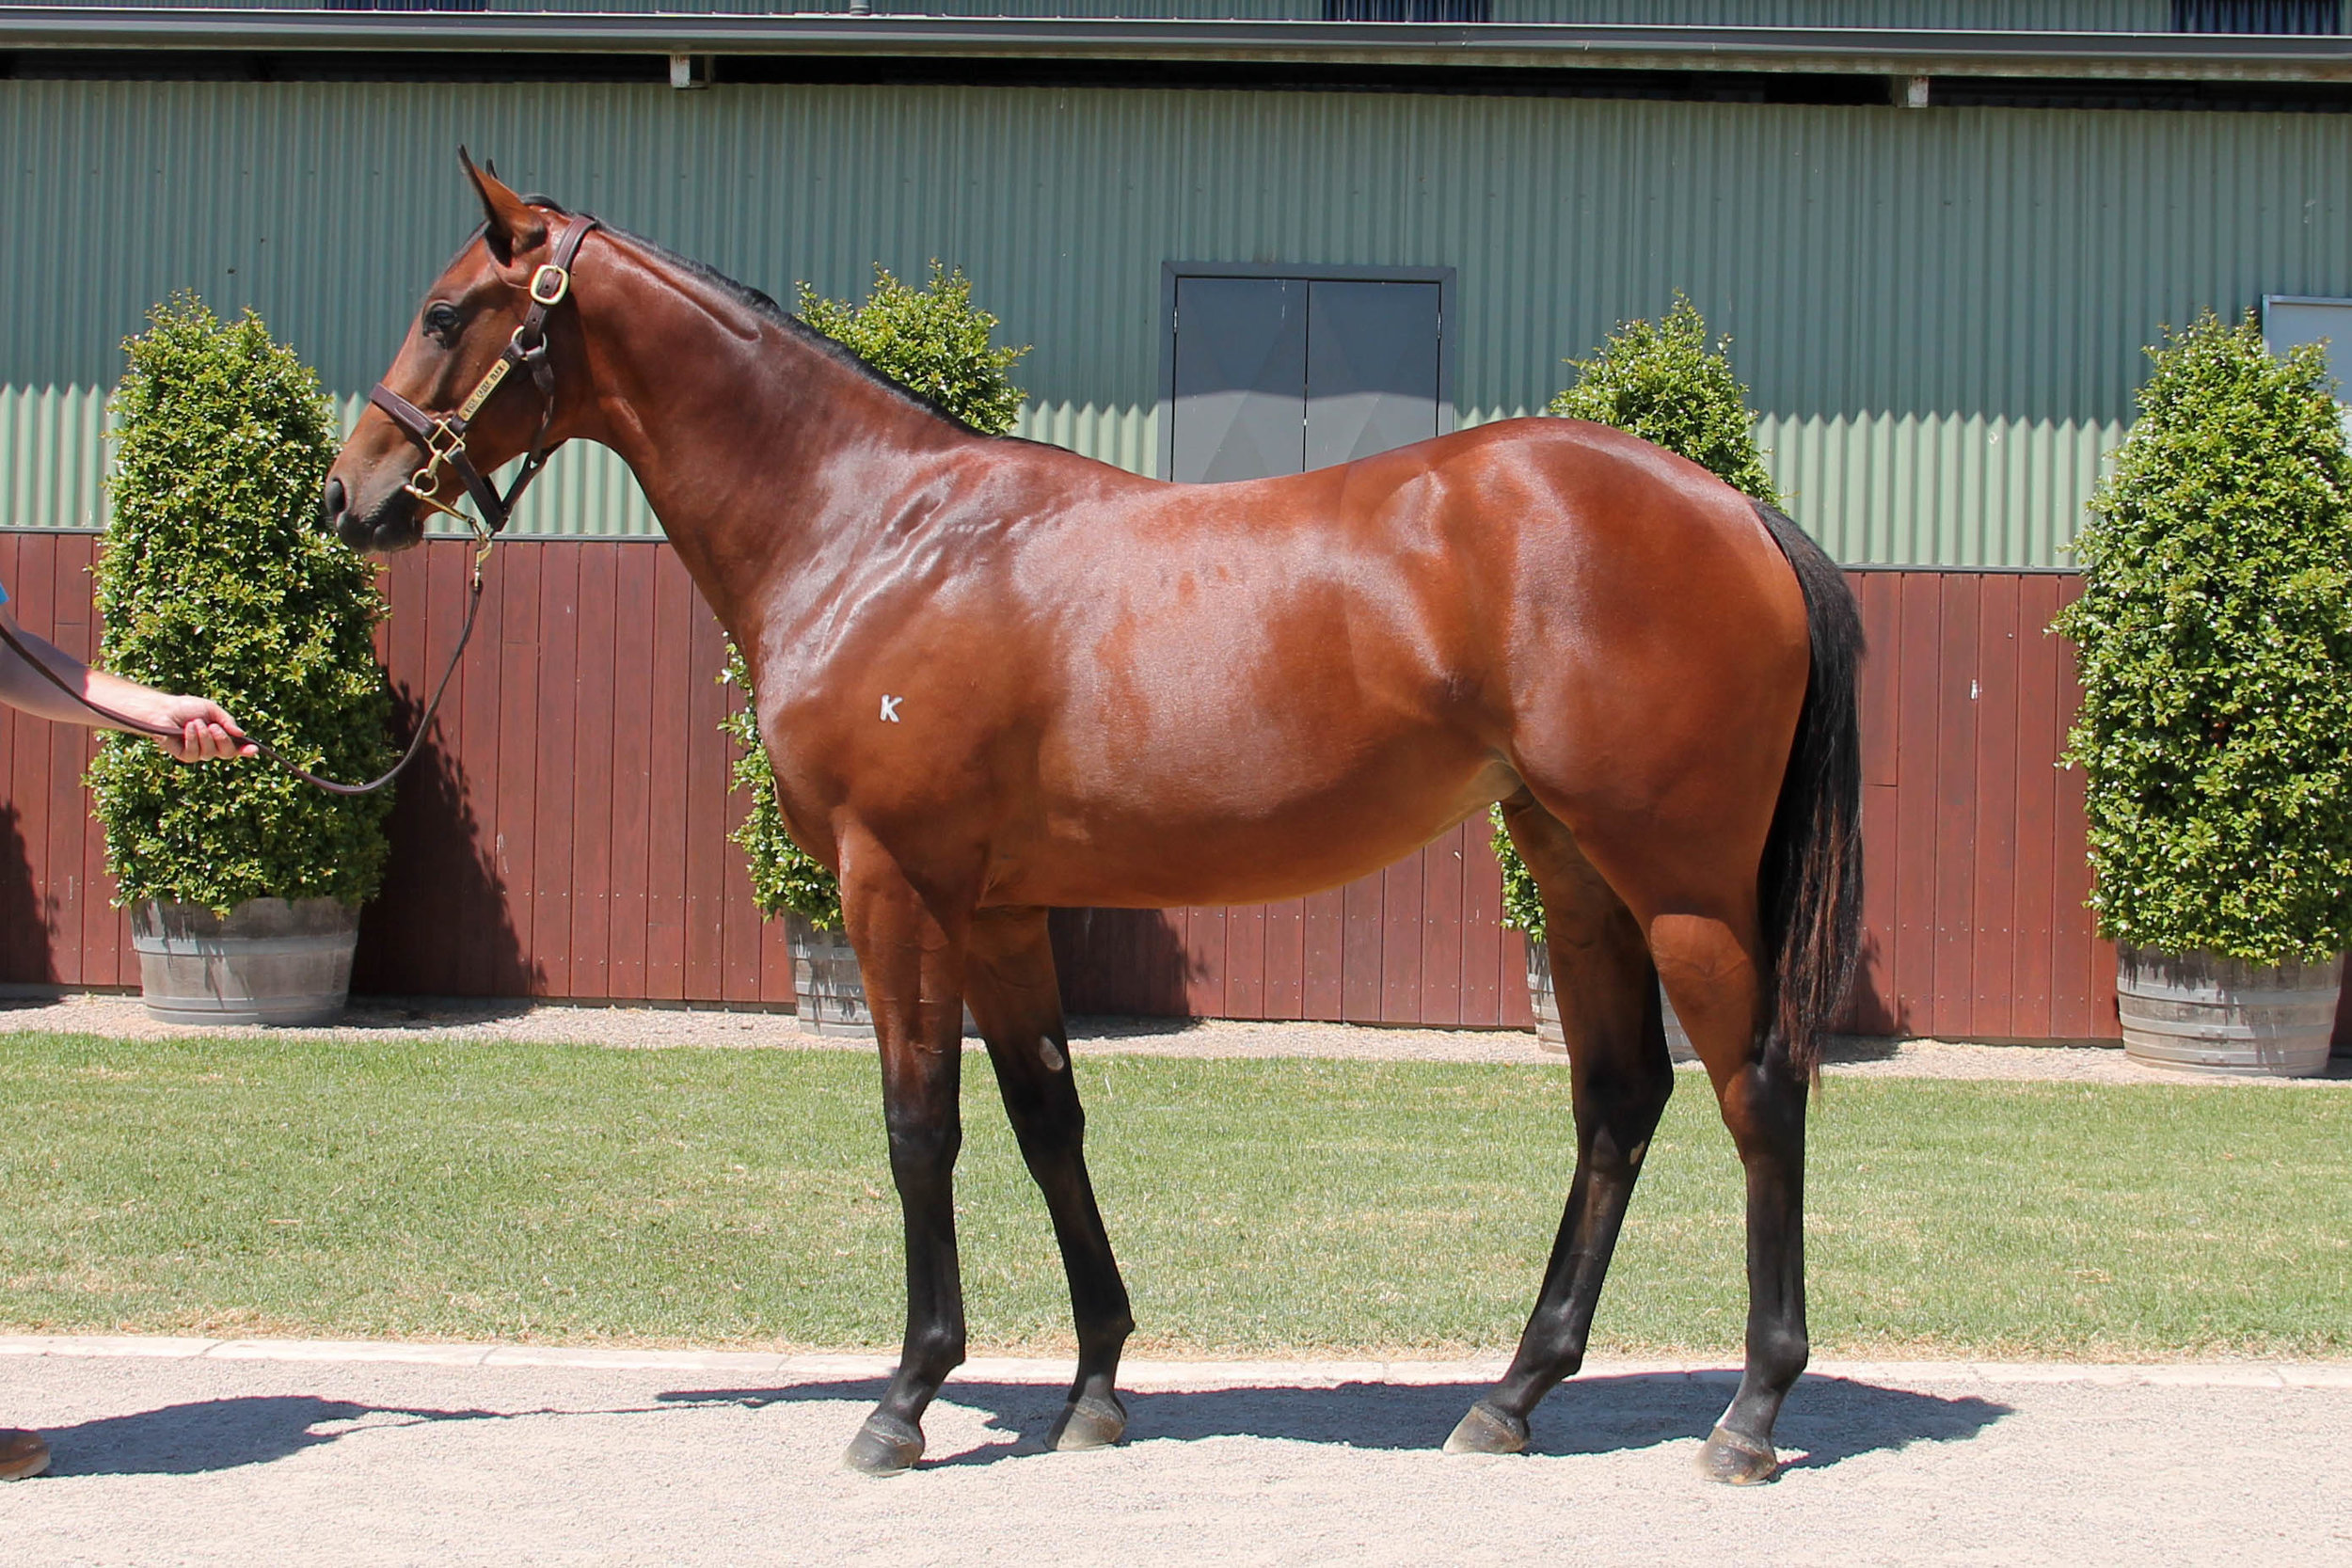 Lot 714 - Press Statement x So Vital (NZ) 17 Filly - Sold to Kehigh Developements for $20,000